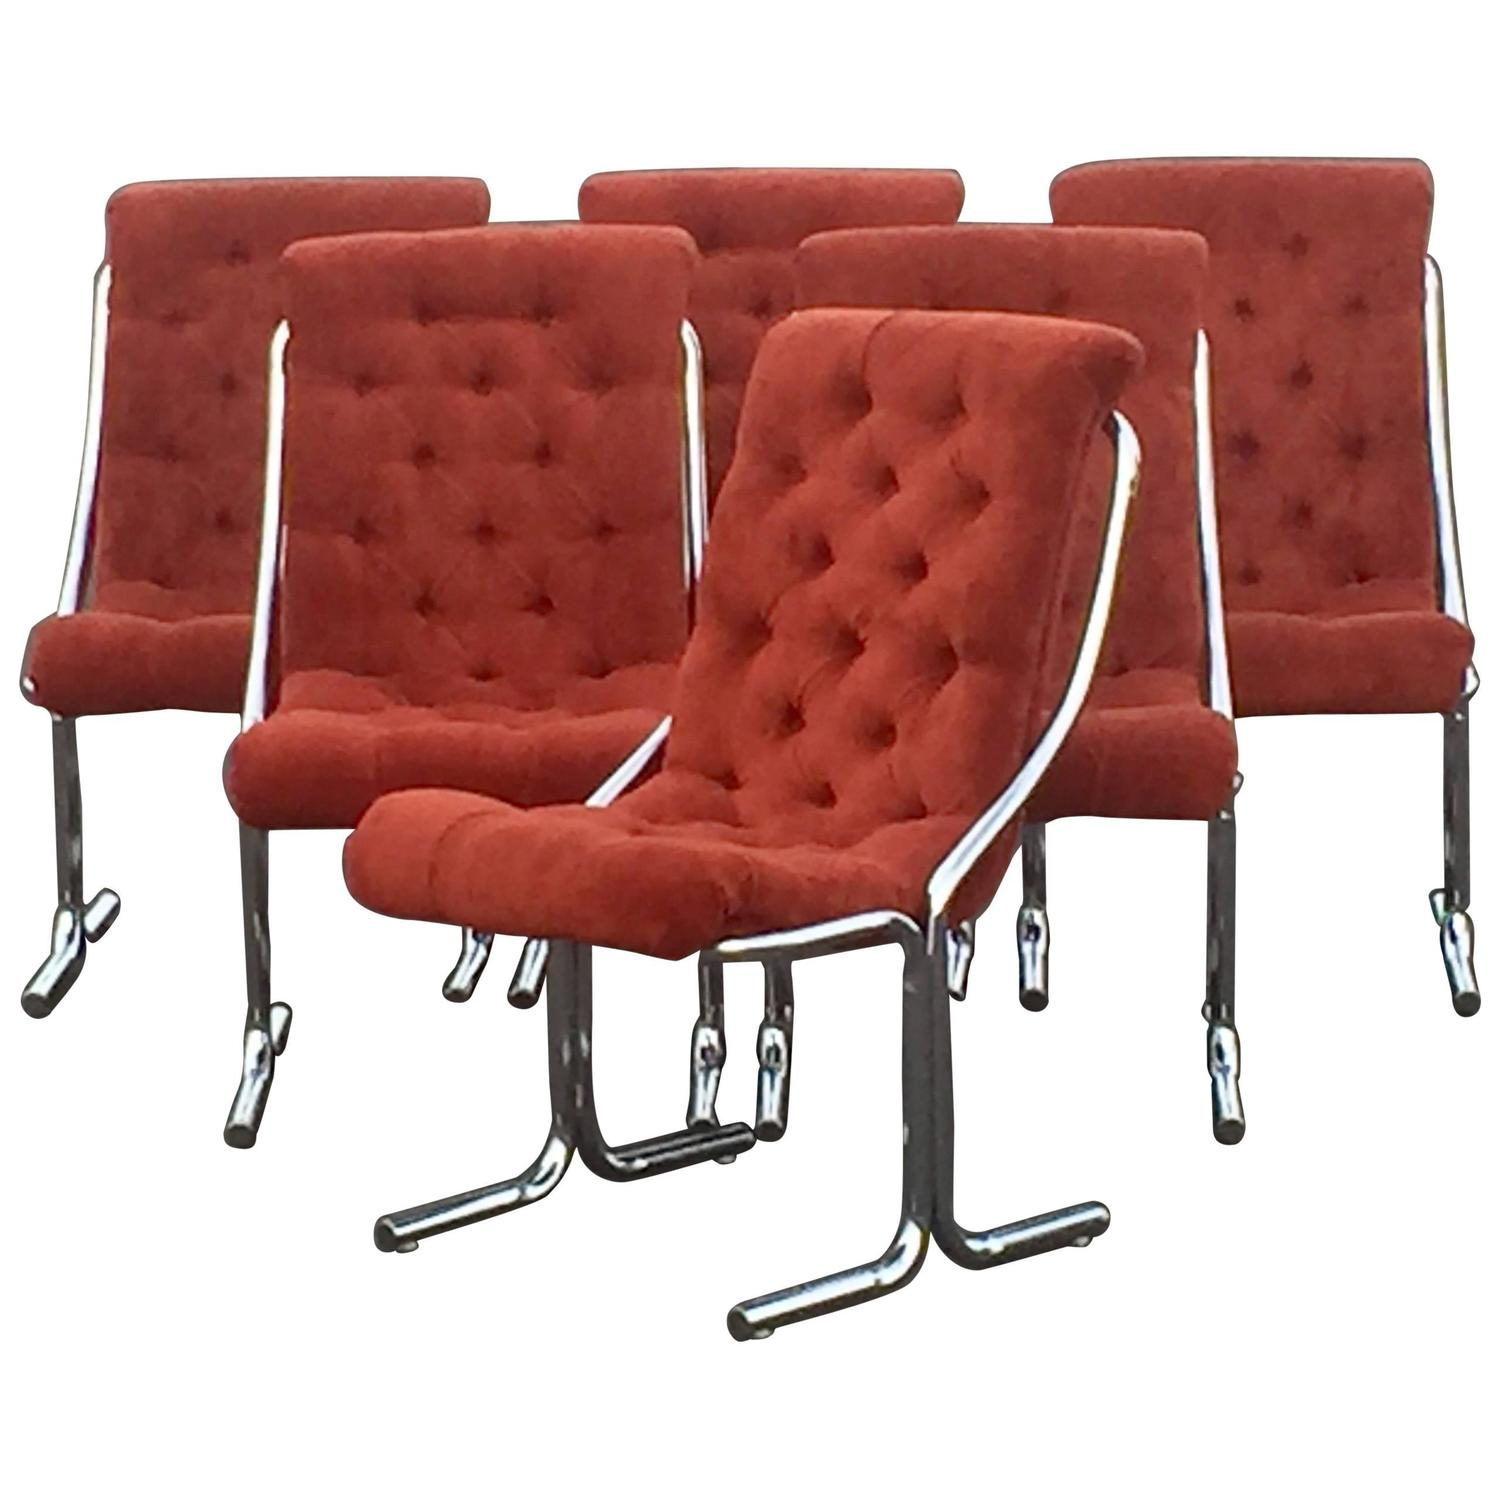 Super Cool Set Of Six Daystrom Mid Century Modern Chrome And Velour Chairs